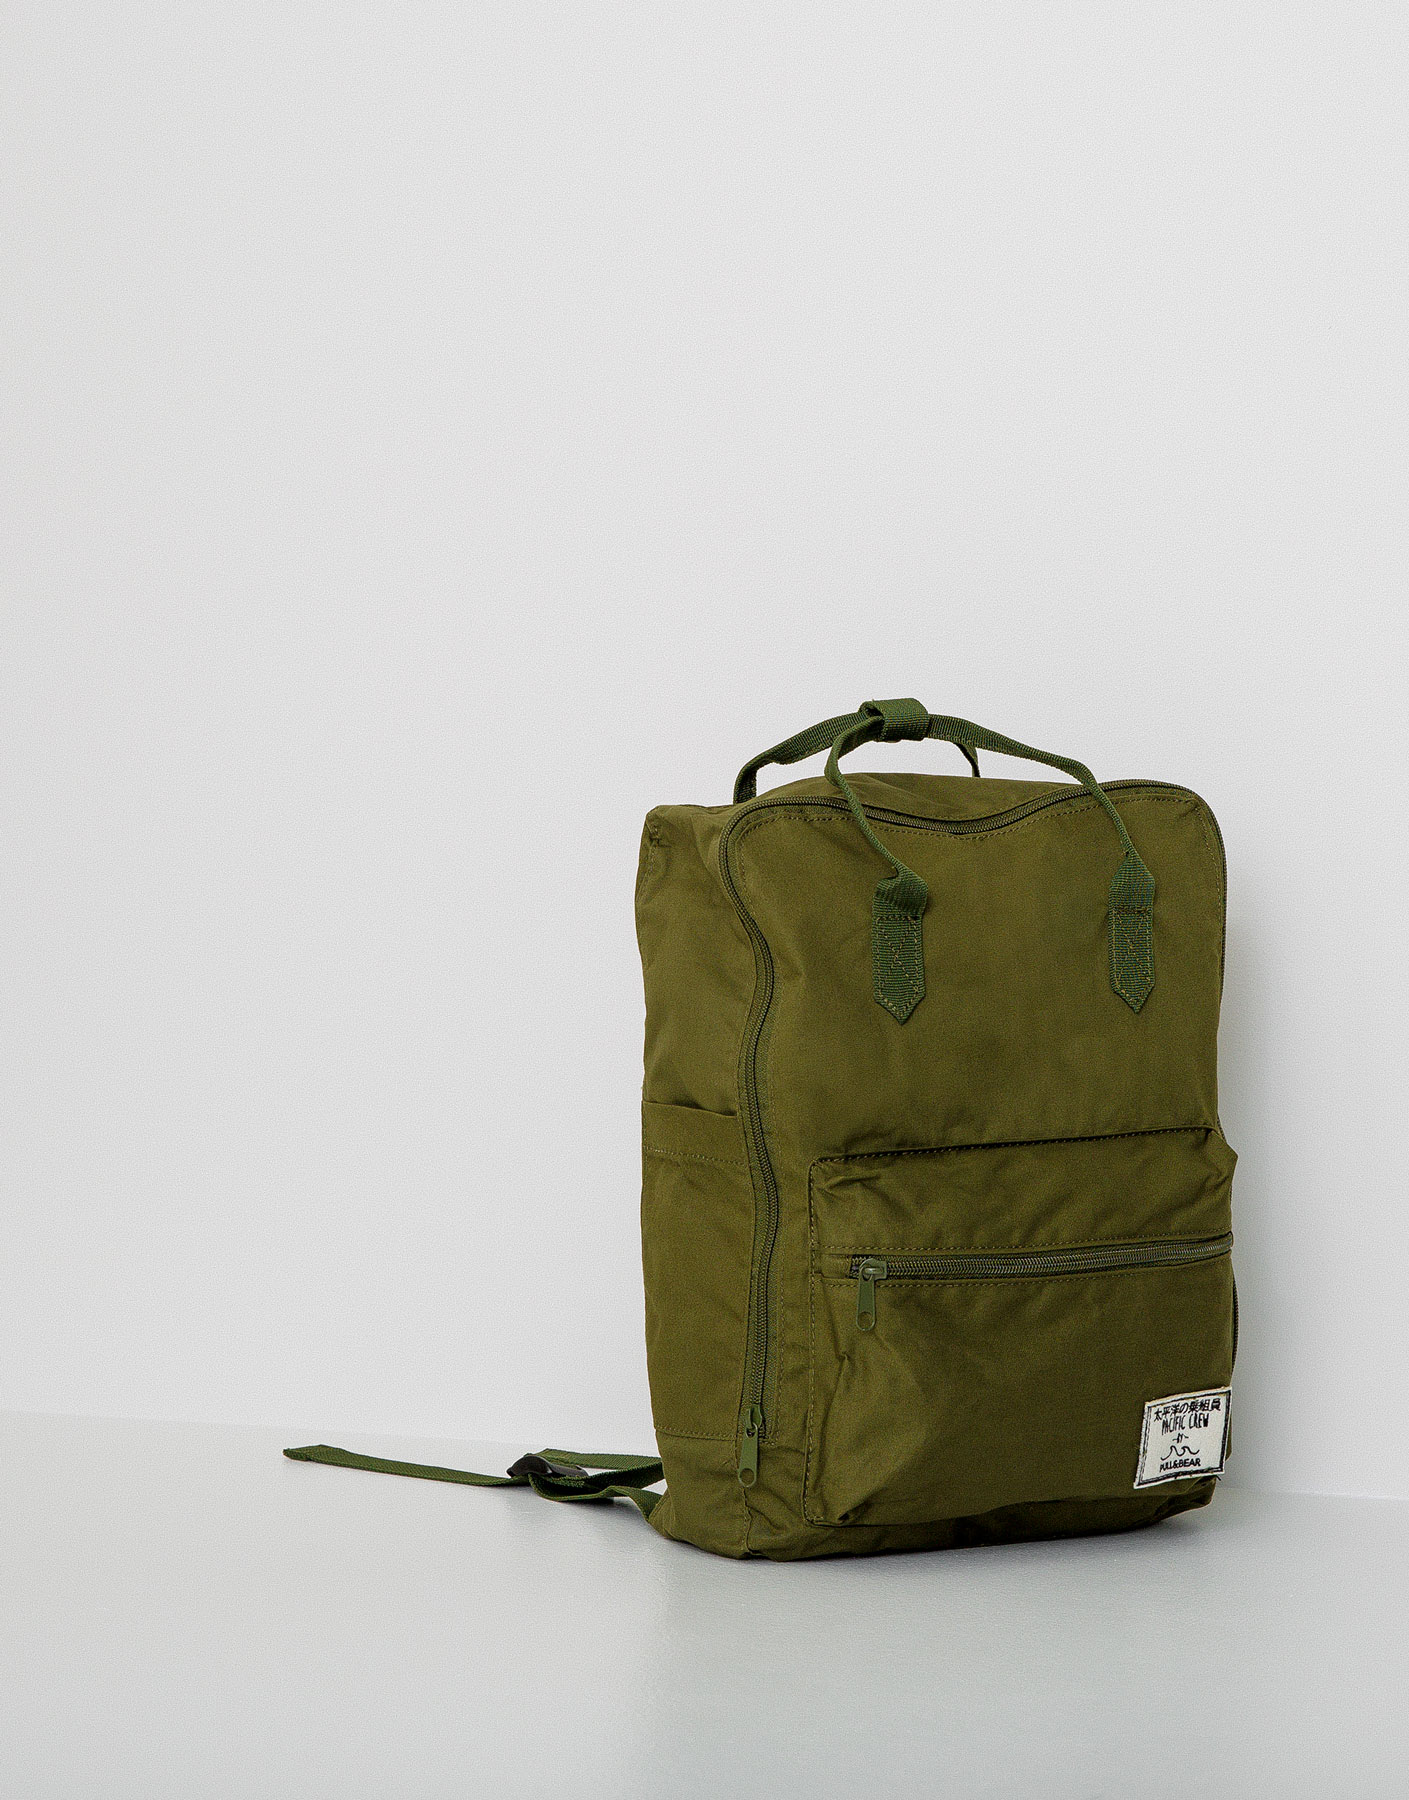 Backpack with handles and pocket